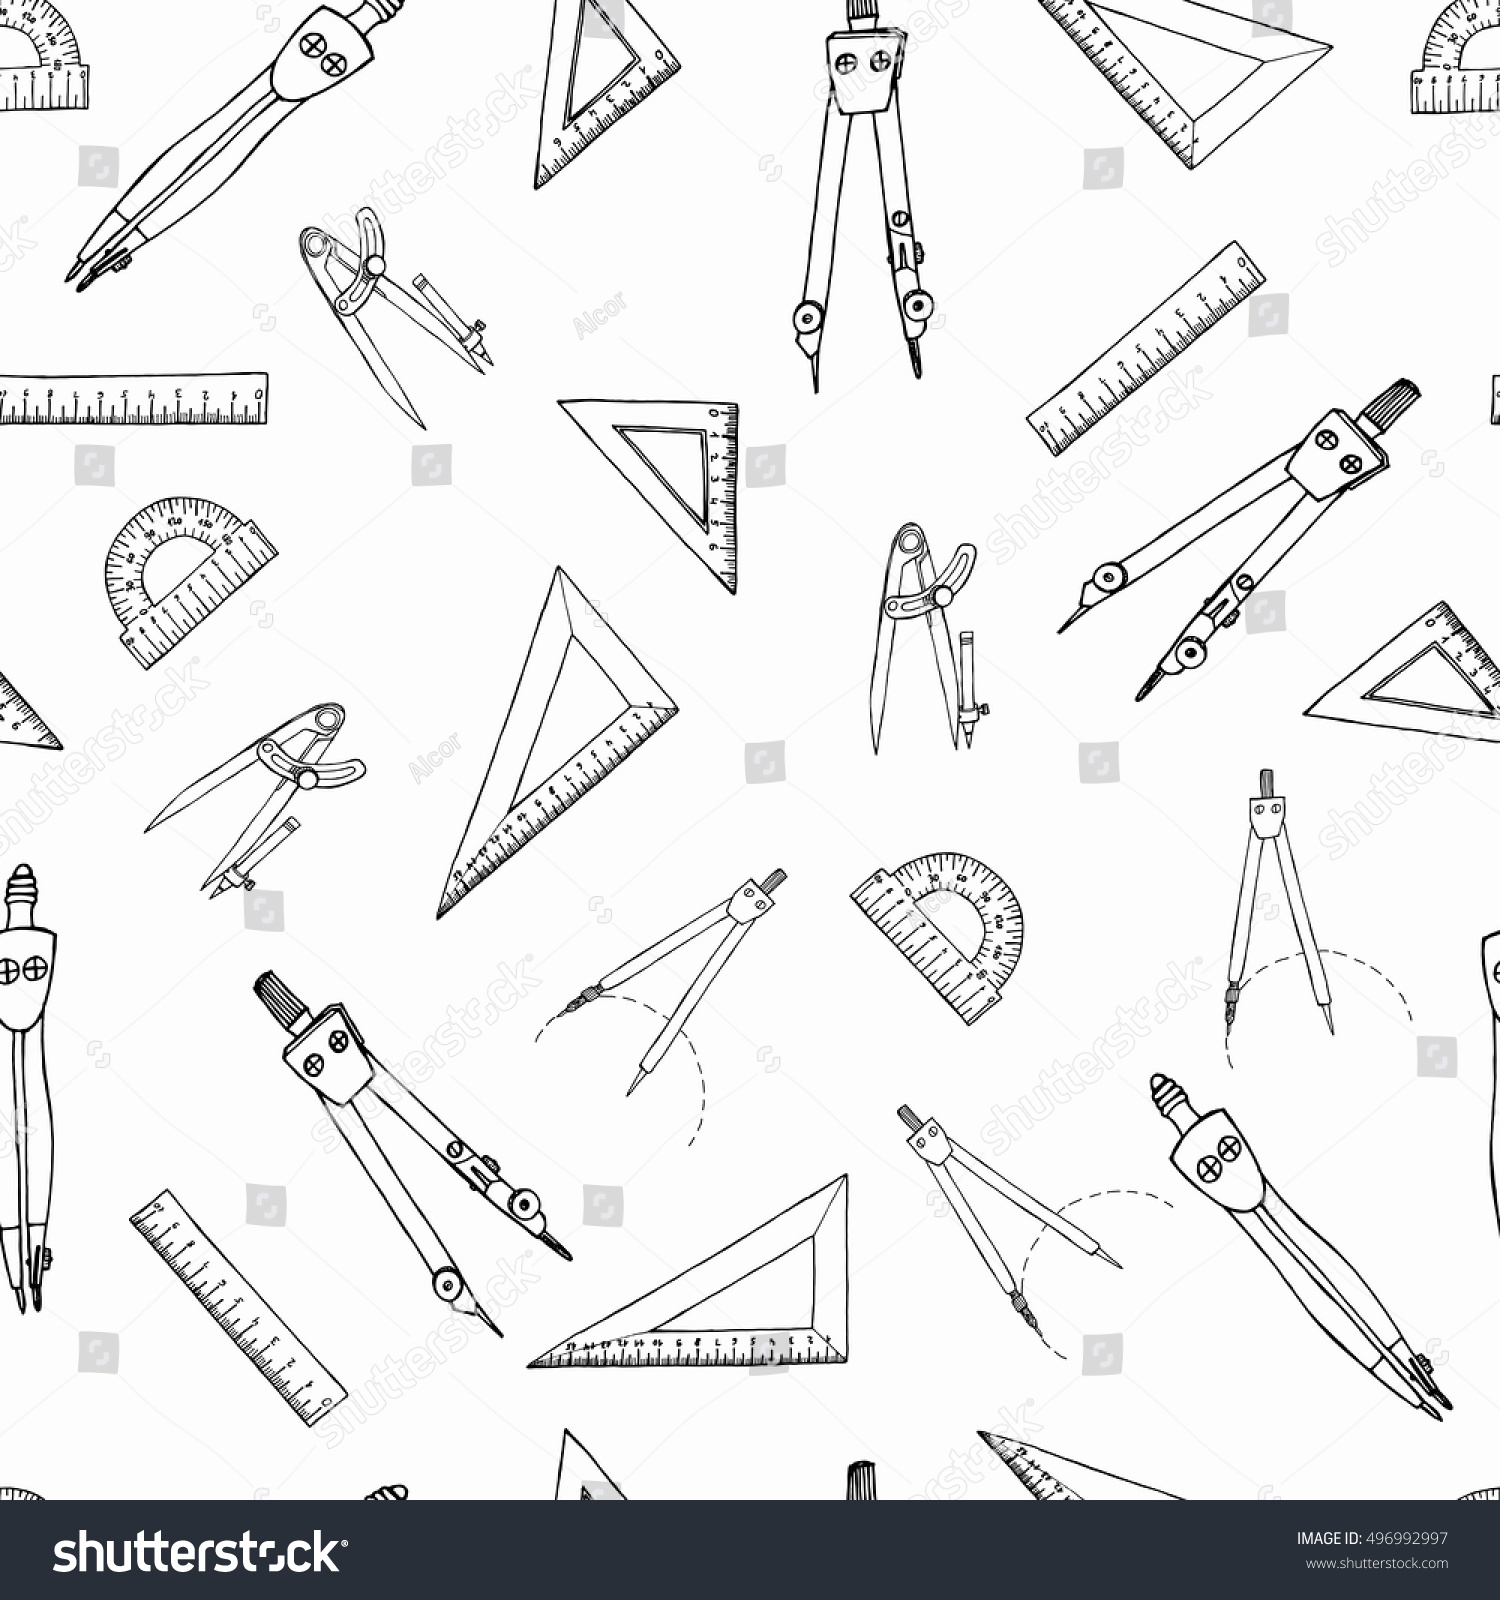 worksheet Protractor Print ruler triangle compasses protractor hand drawn stock vector and pattern with freehand sketch icons for